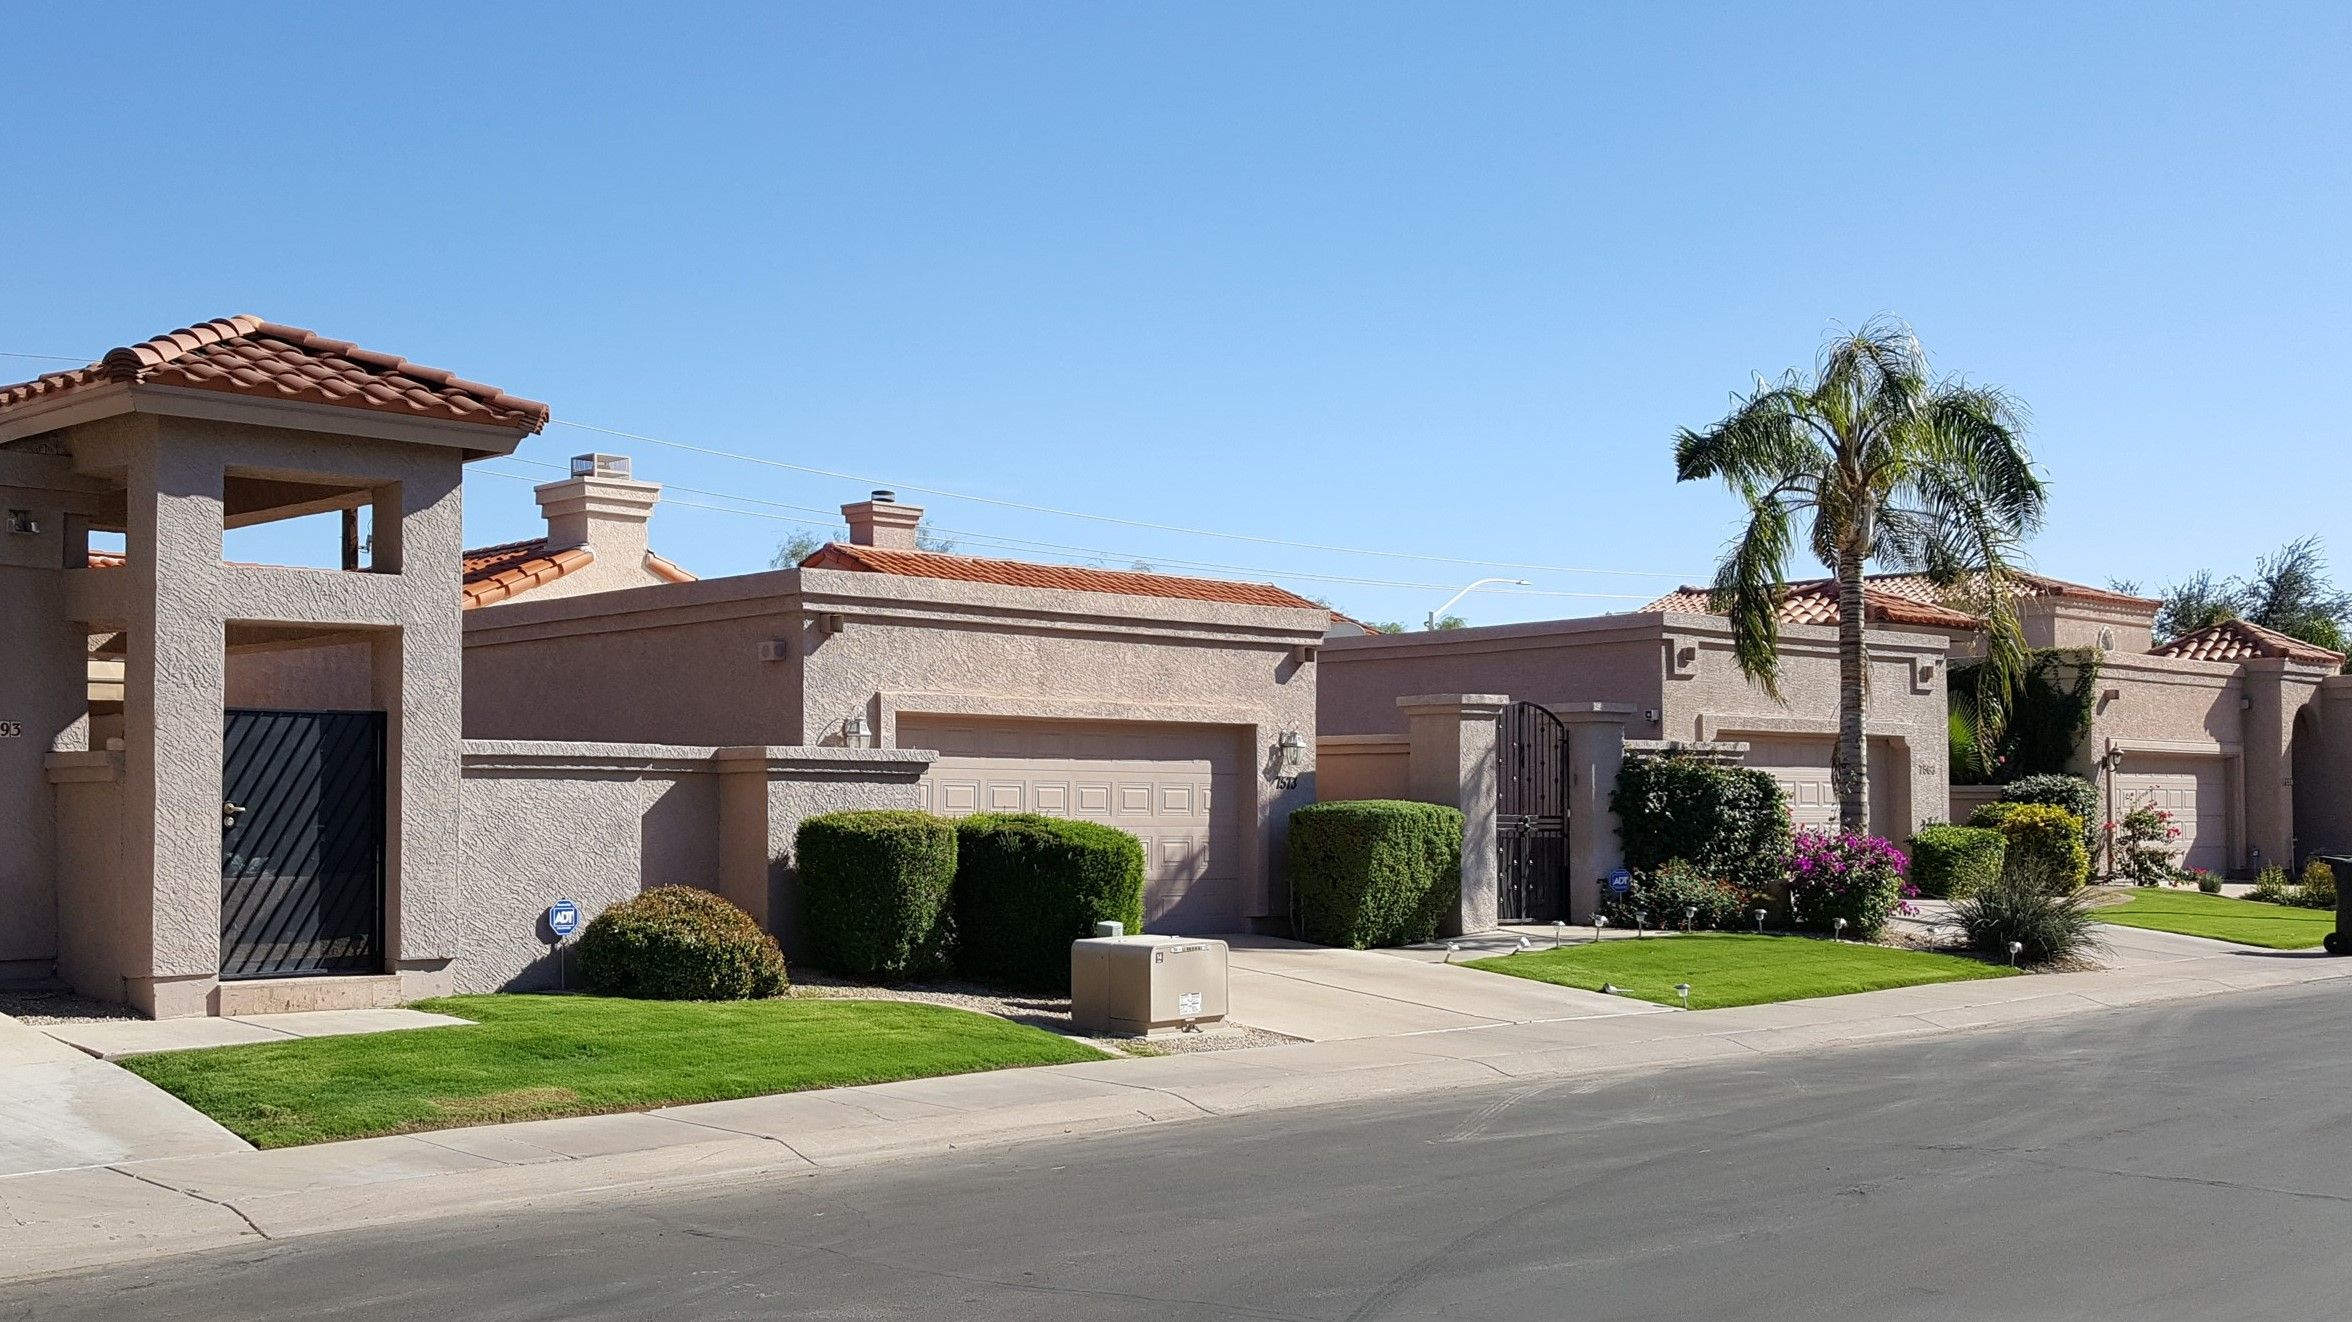 This is Actually the Brand New Picture Of Patio Homes for Sale Ahwatukee